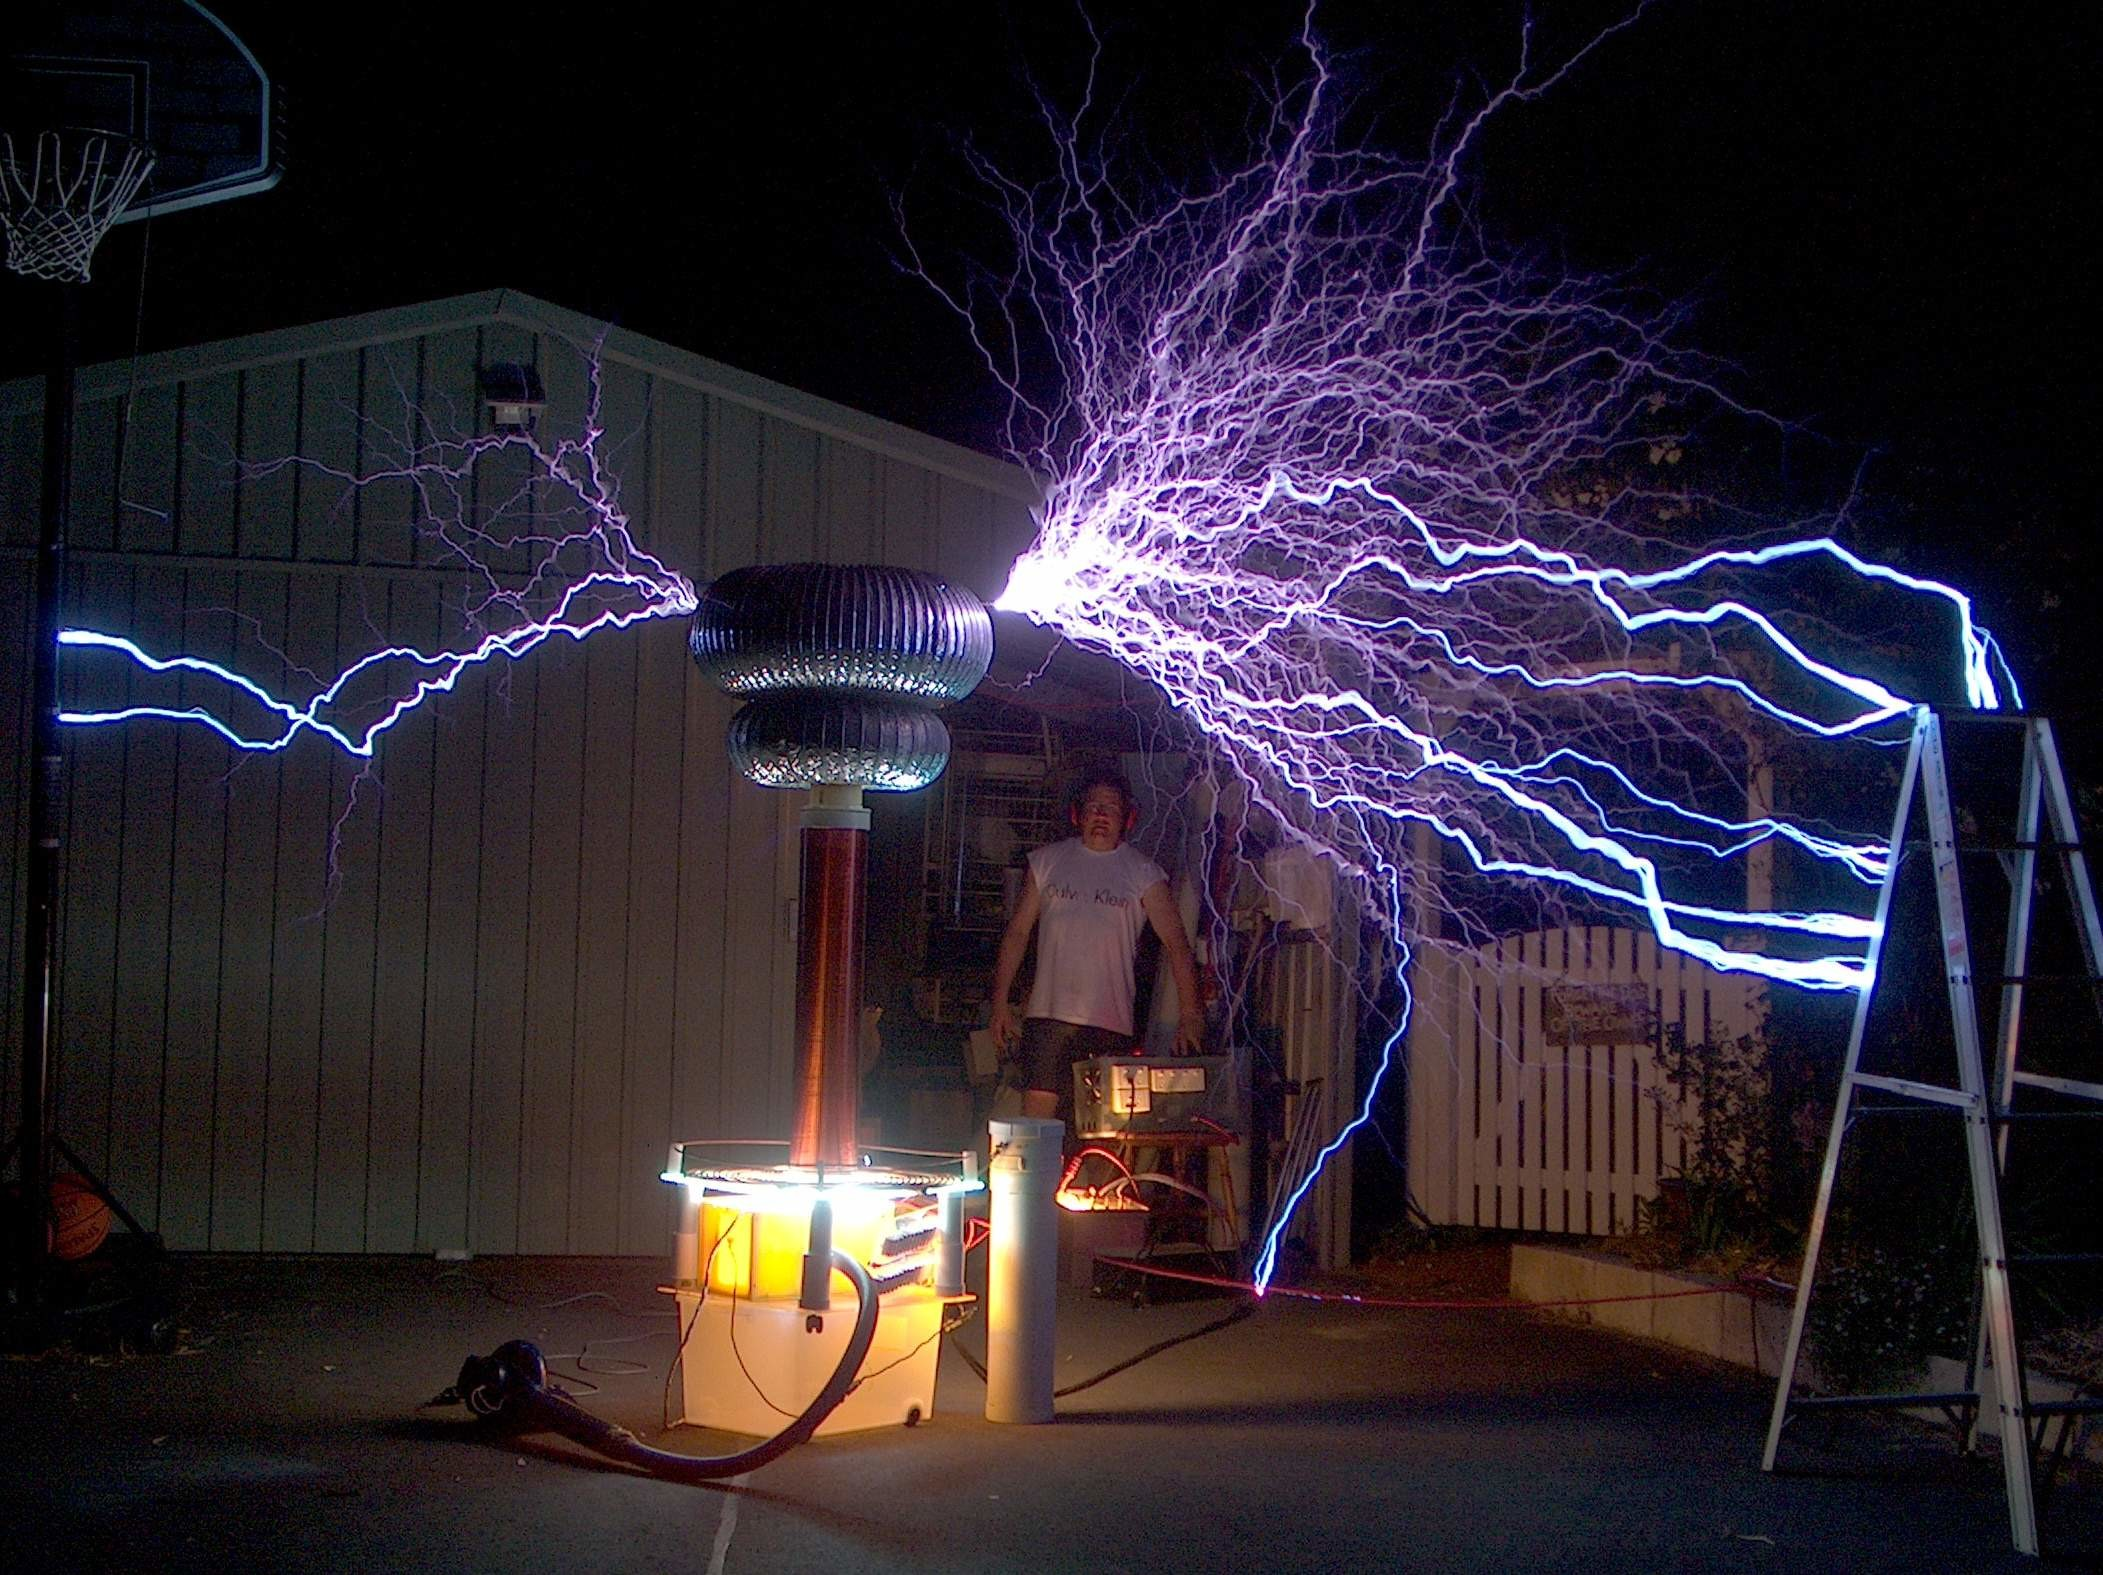 … Tesla coil with 7 foot sparks.